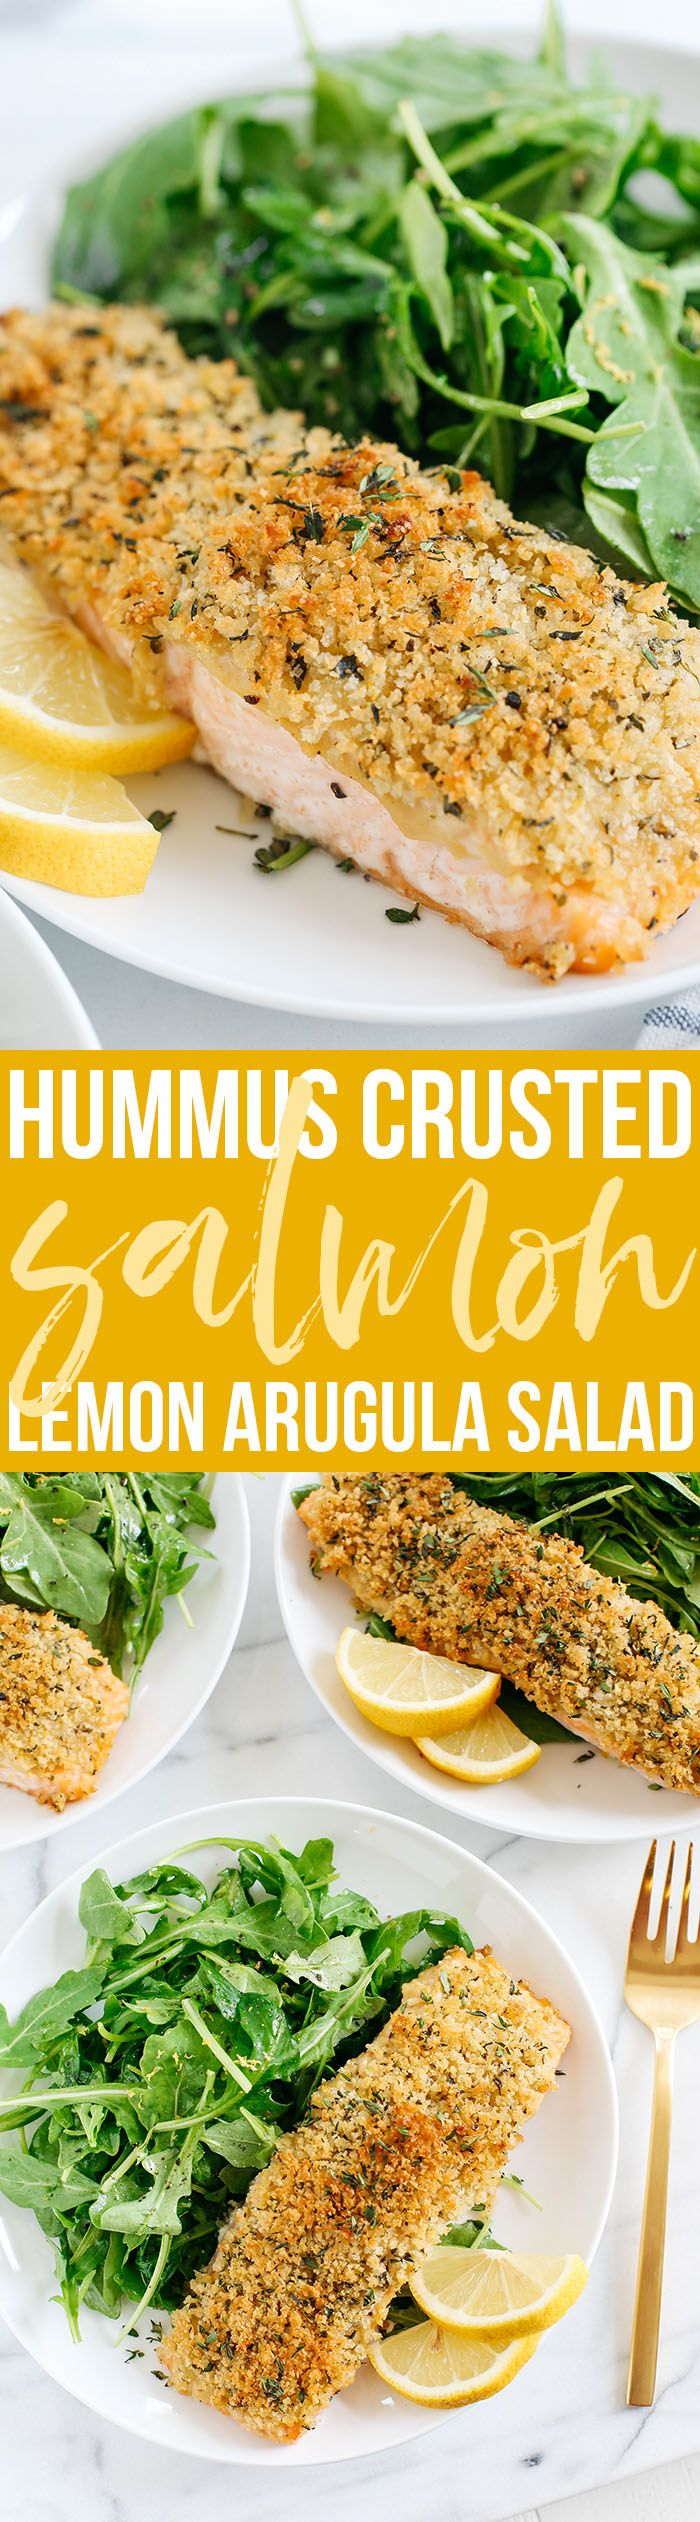 Hummus Crusted Salmon baked to perfection and served with a delicious Lemon Arugula Salad for the perfect healthy weeknight meal ready in under 30 minutes! @alaskaseafood #AskforAlaska #IC #ad